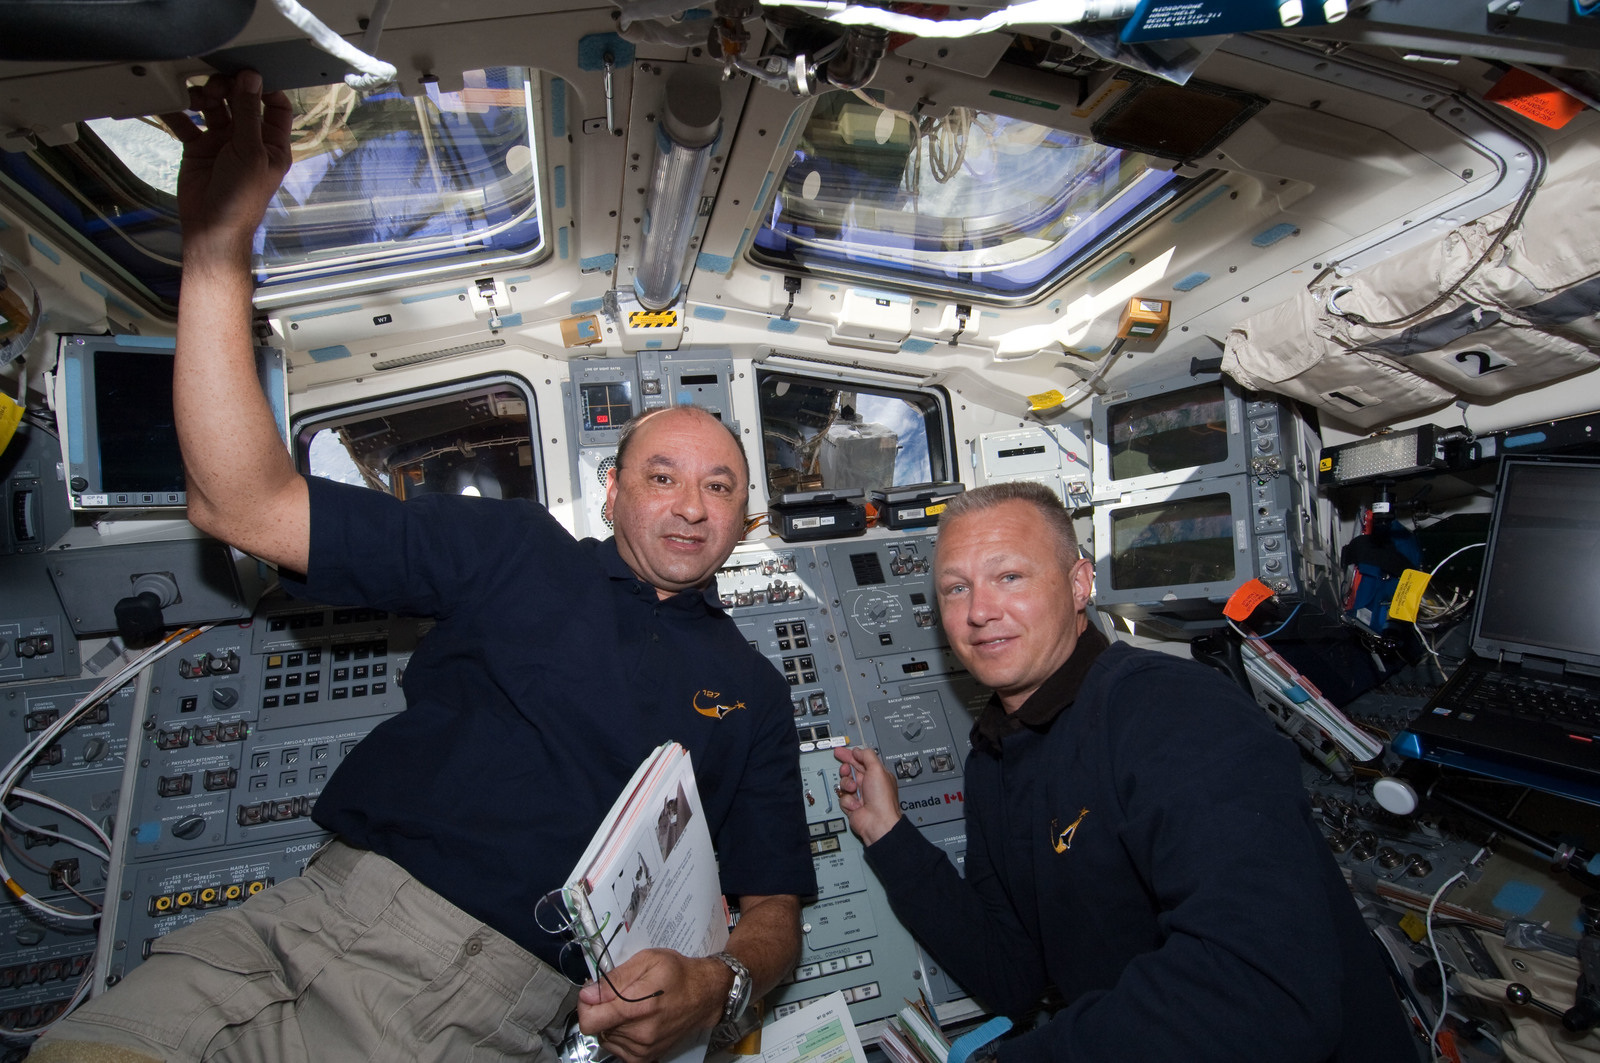 S127E006921 - STS-127 - Polansky and Hurley in the aft FD during STS-127 / Expedition 20 Joint Operations